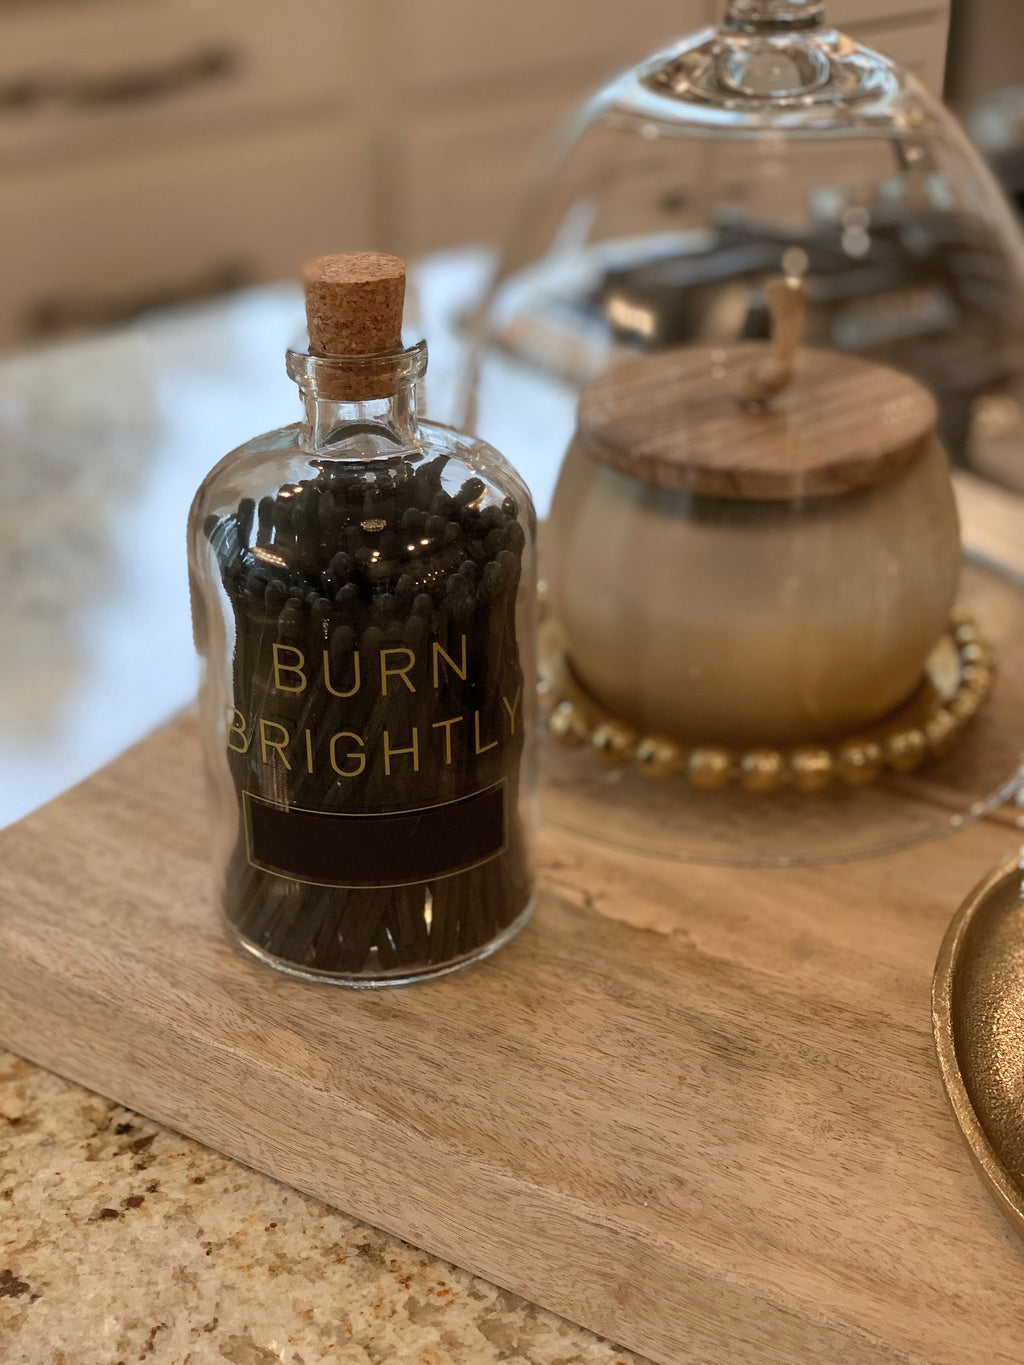 """Burn Brightly"" Match Bottle"